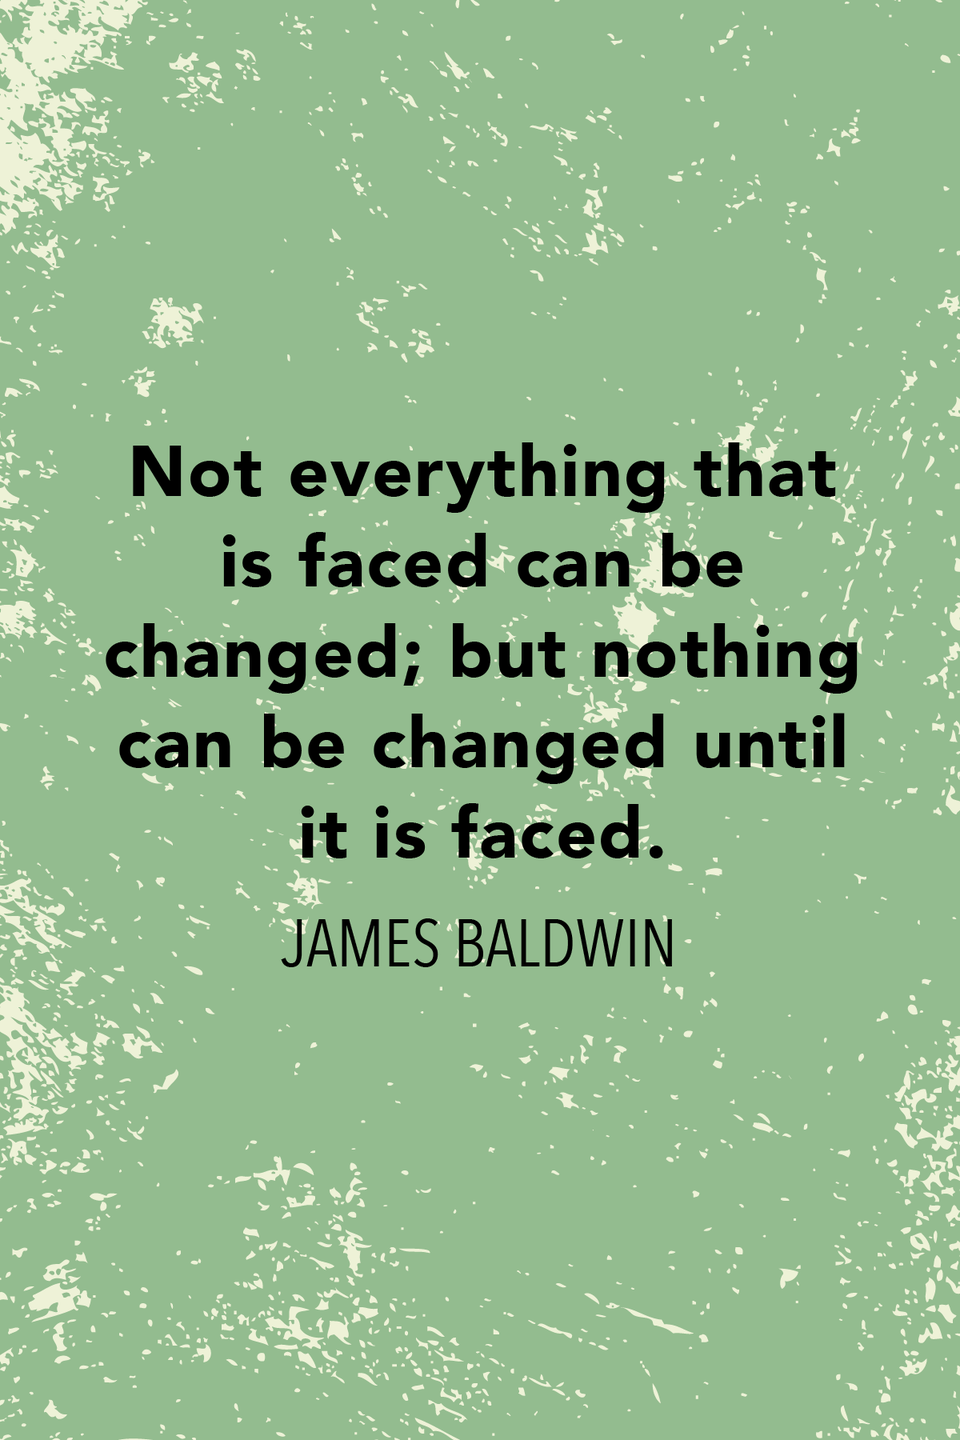 """<p>""""Not everything that is faced can be changed; but nothing can be changed until it is faced,"""" Baldwin <a href=""""https://timesmachine.nytimes.com/timesmachine/1962/01/14/118438007.pdf?pdf_redirect=true&ip=0"""" rel=""""nofollow noopener"""" target=""""_blank"""" data-ylk=""""slk:wrote in a 1962 essay for The New York Times"""" class=""""link rapid-noclick-resp"""">wrote in a 1962 essay for <em>The New York Times</em></a>.</p>"""